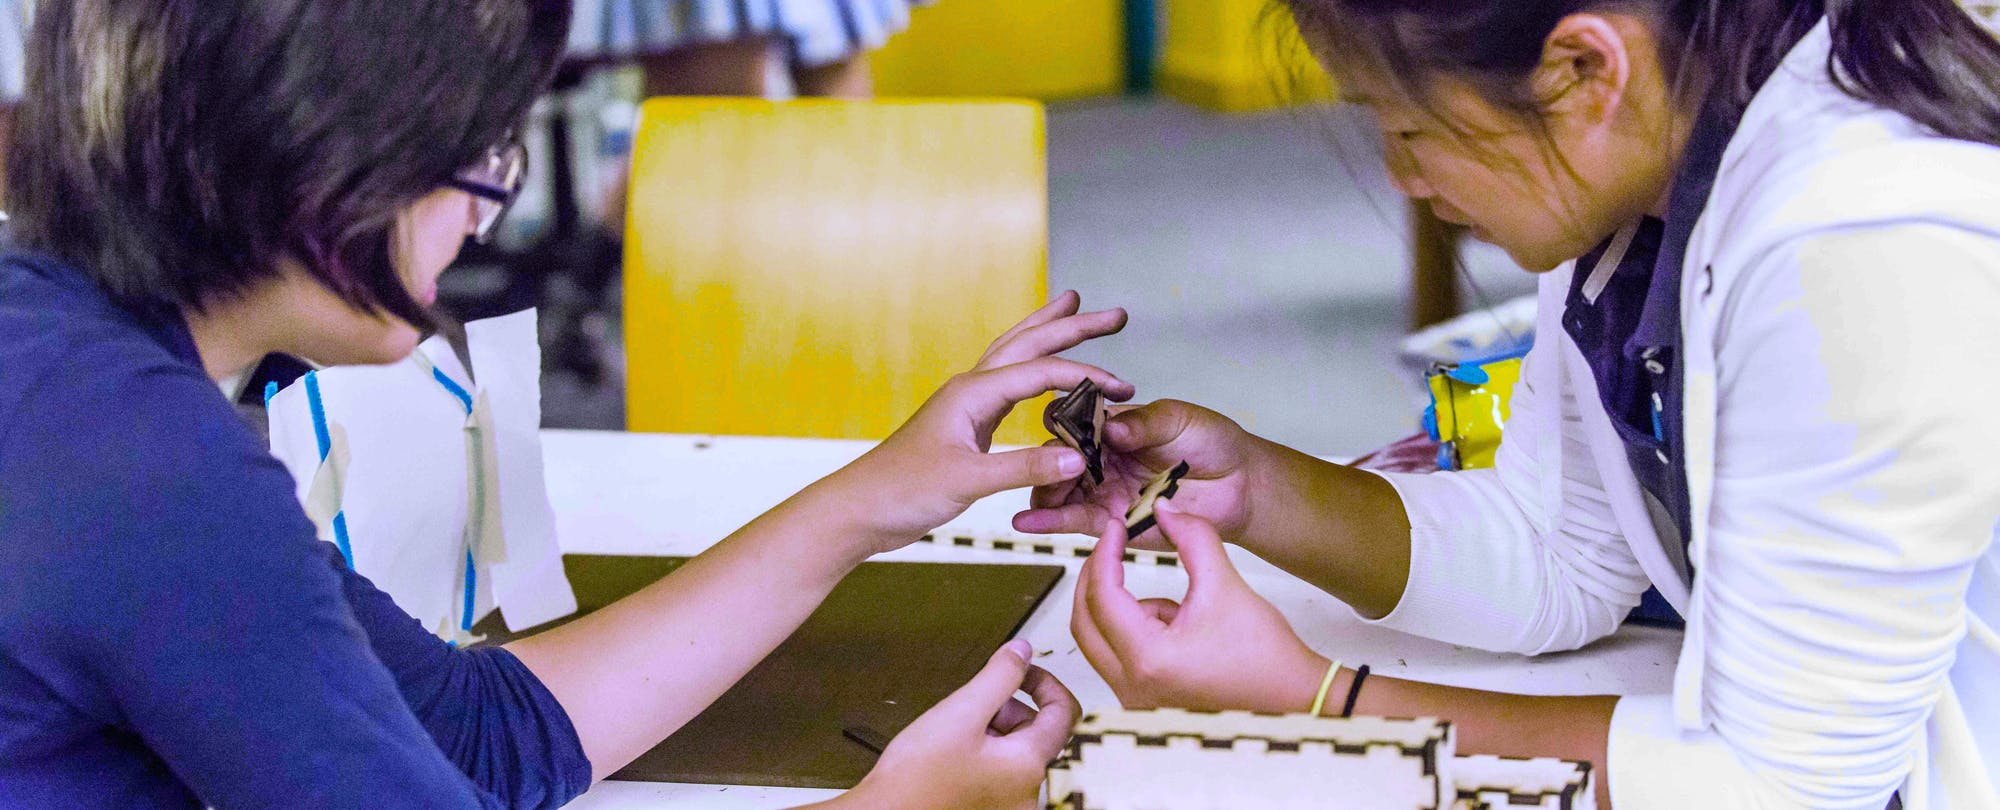 The Importance of Maker Education for Girls